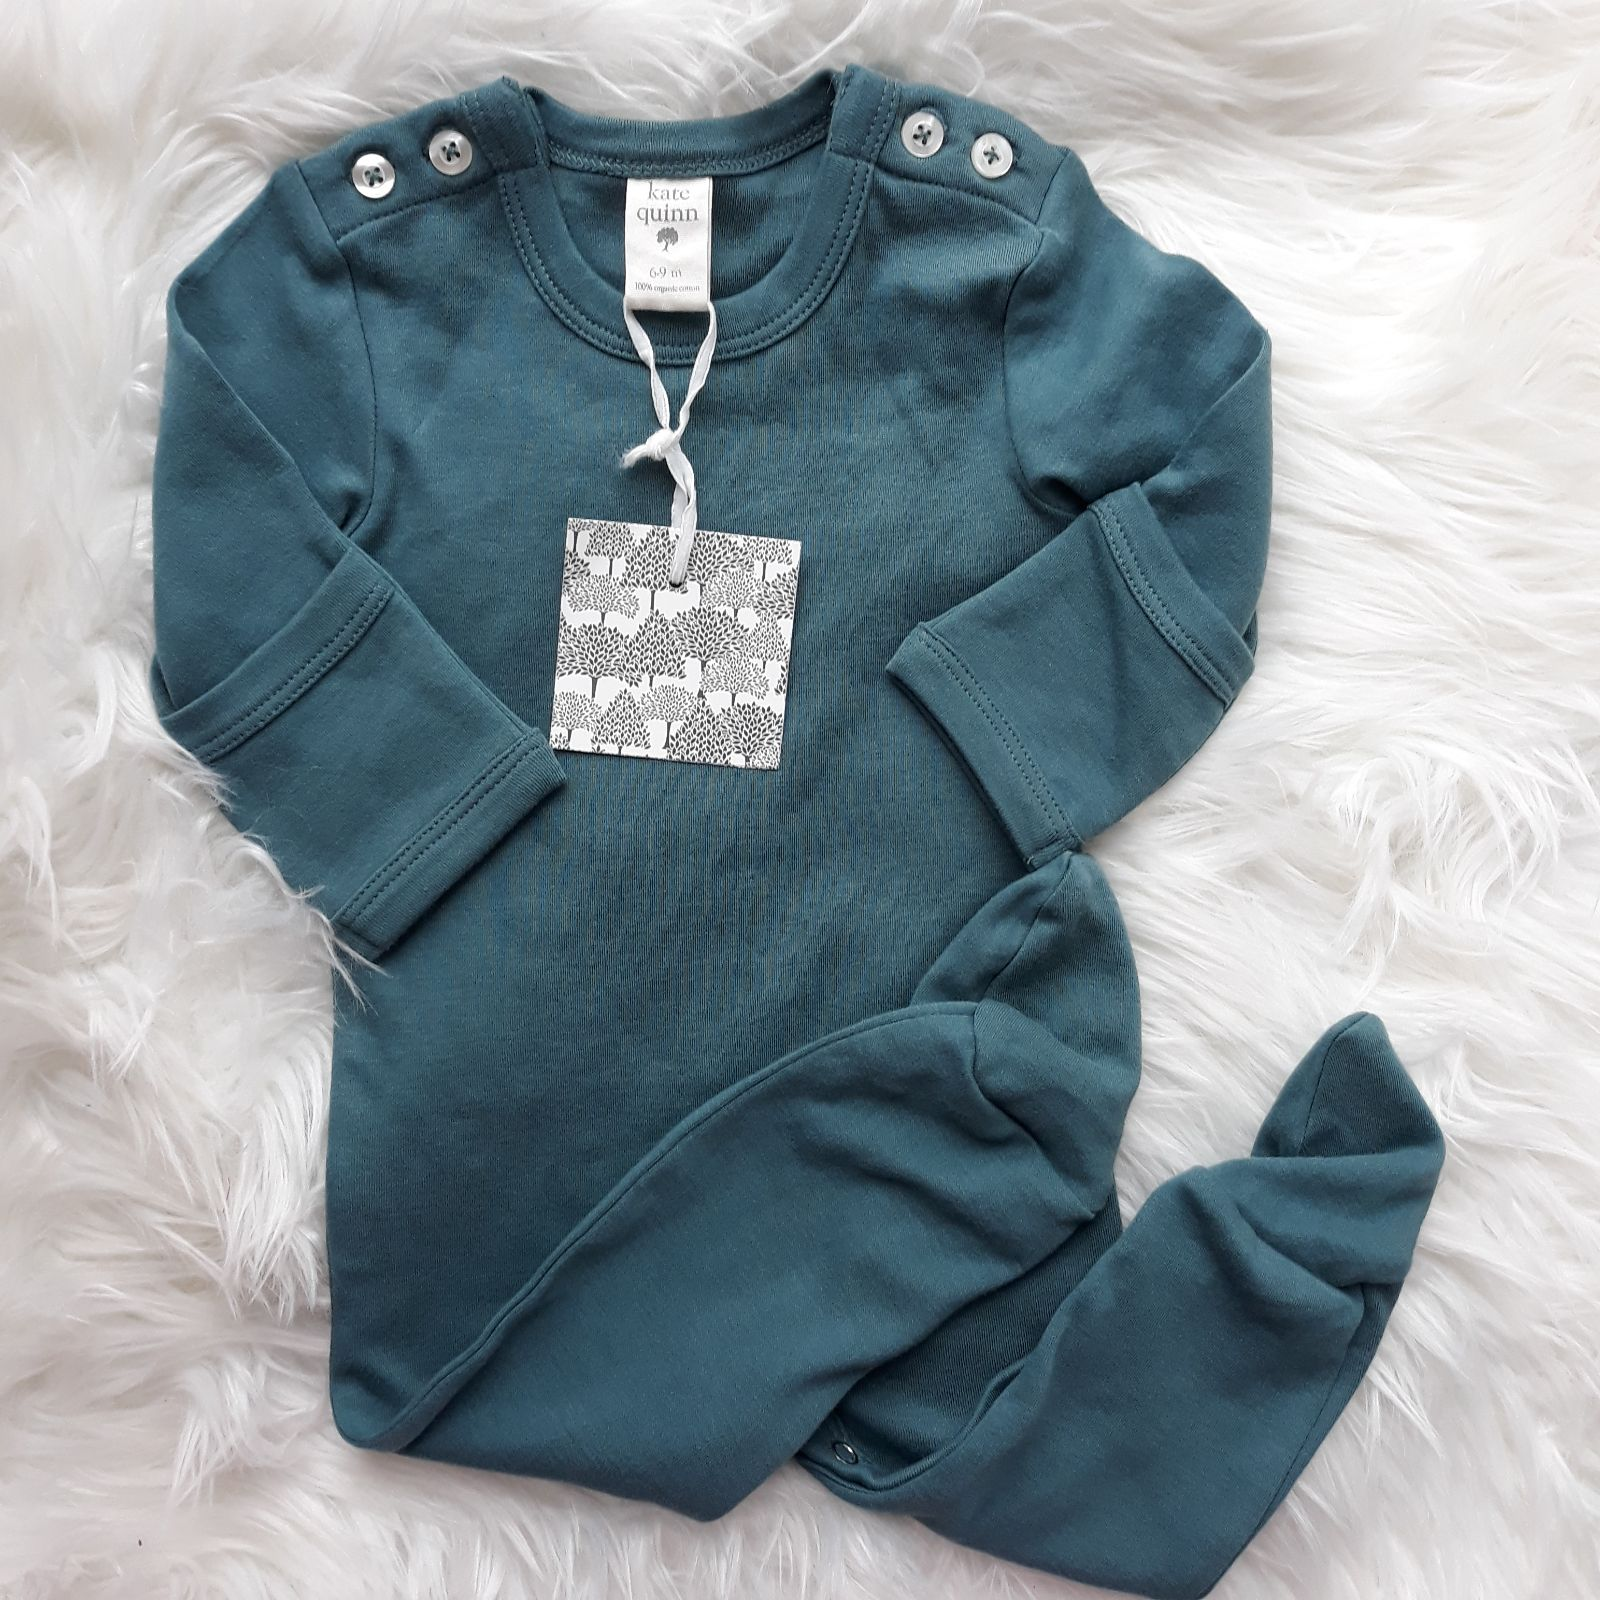 Kate Quinn 6-9 month teal footie